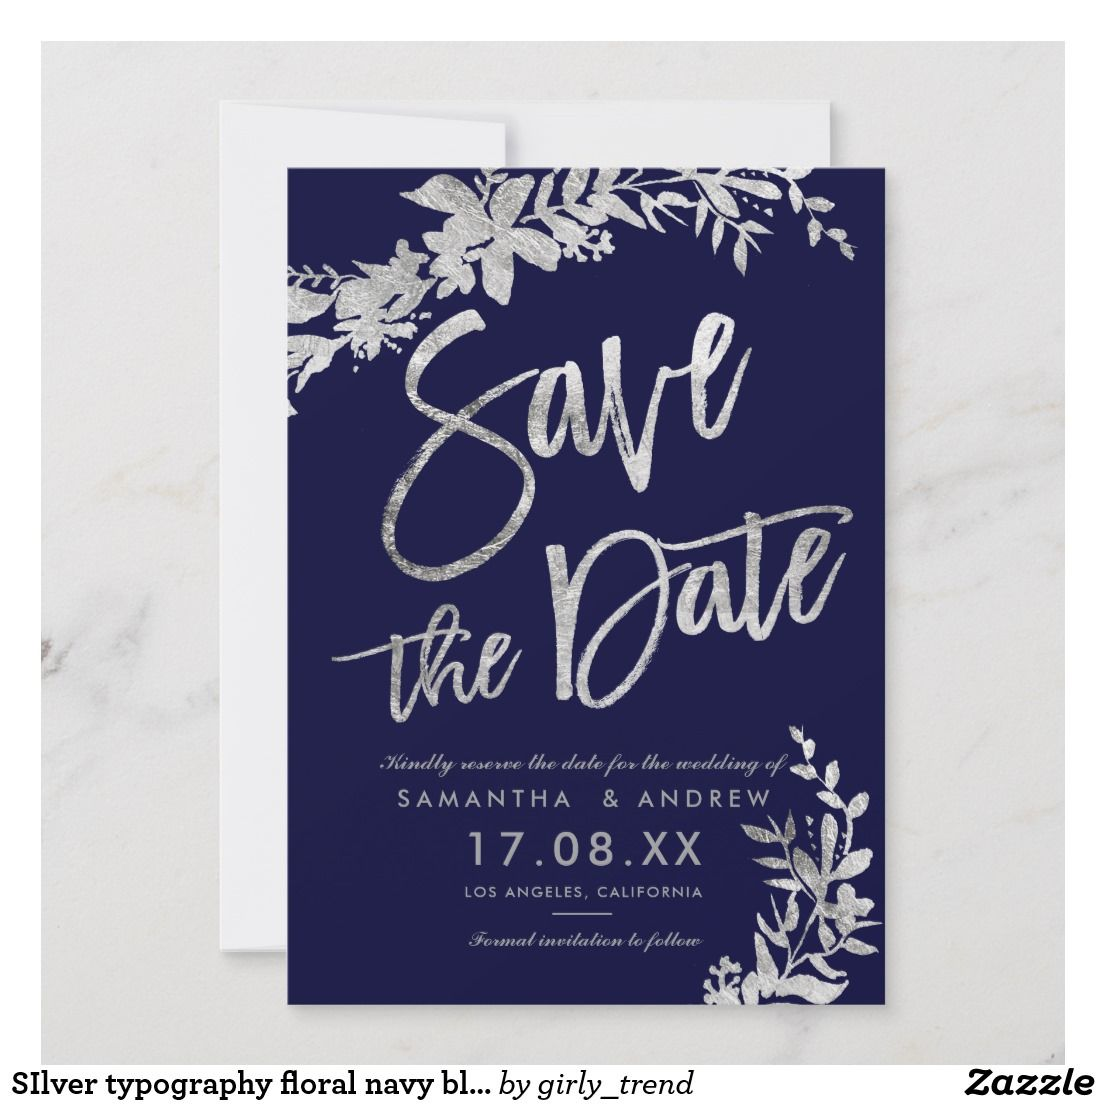 Silver Typography Floral Navy Blue Save The Date Zazzle Co Uk Blue Save The Dates Silver Typography Navy Blue Wedding Invitations